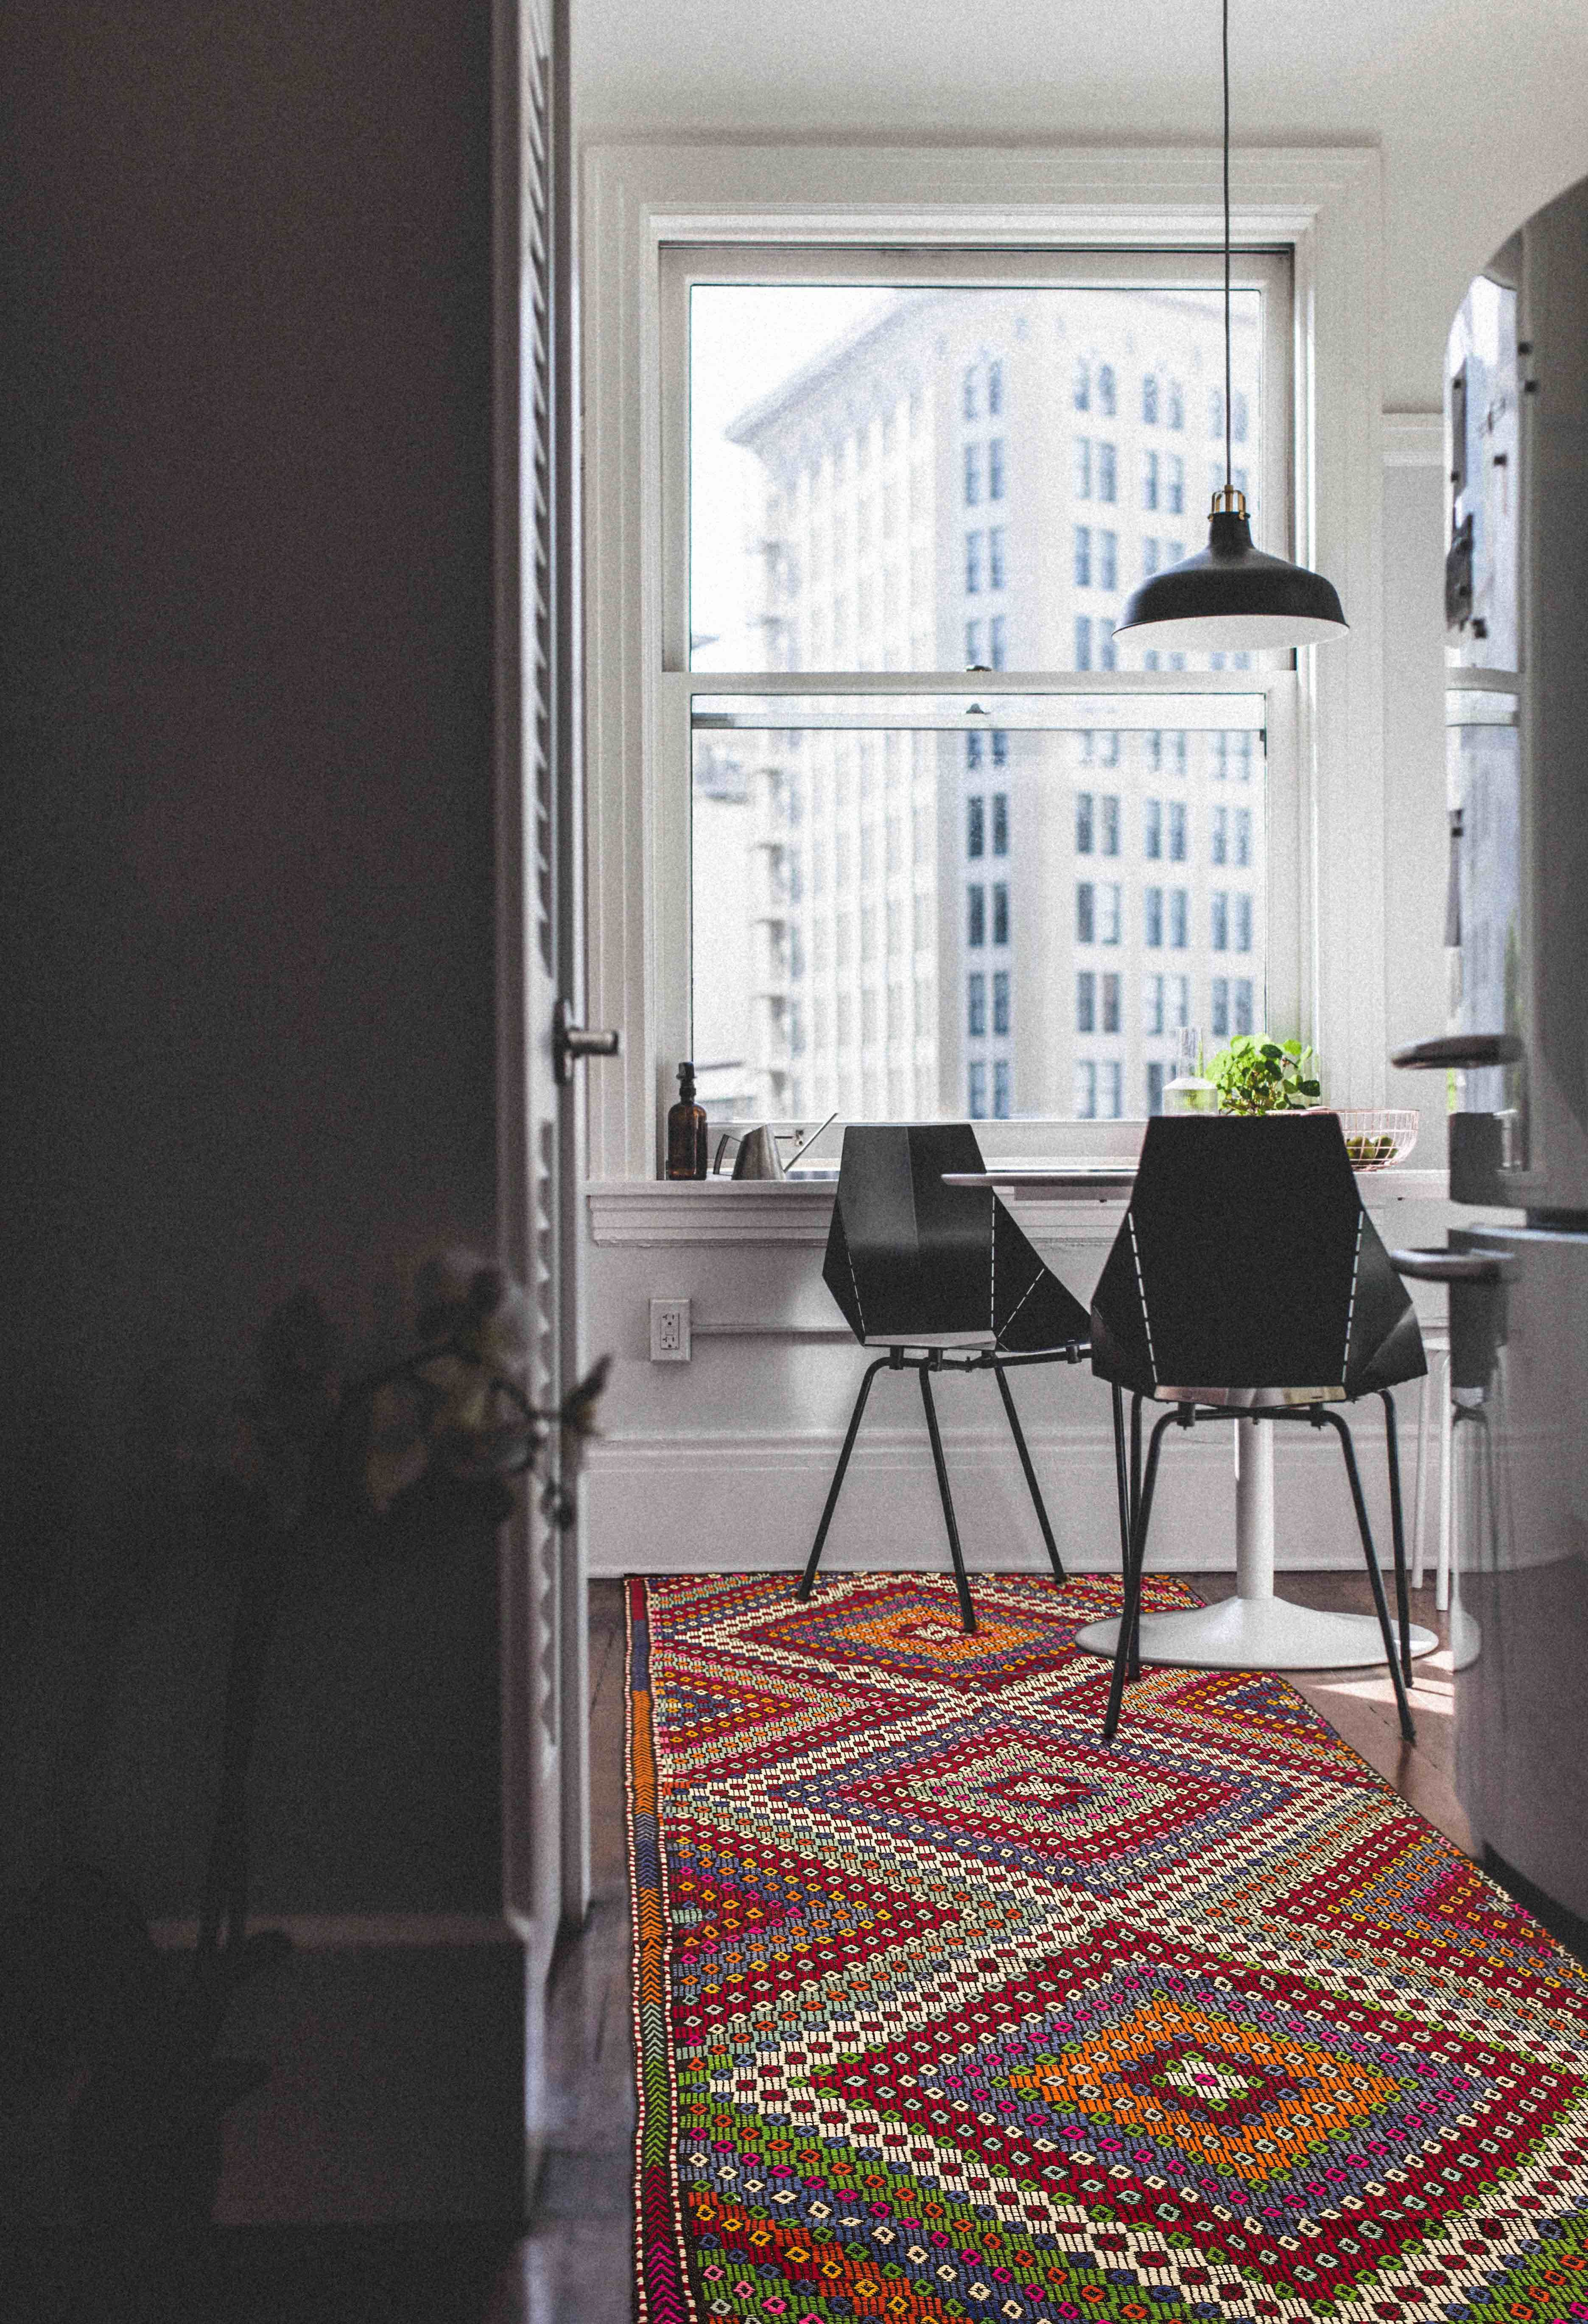 Are You Planning To Kilim Rugs Online We Have One Of The Finest Collections That Designed Meet Customer Demands